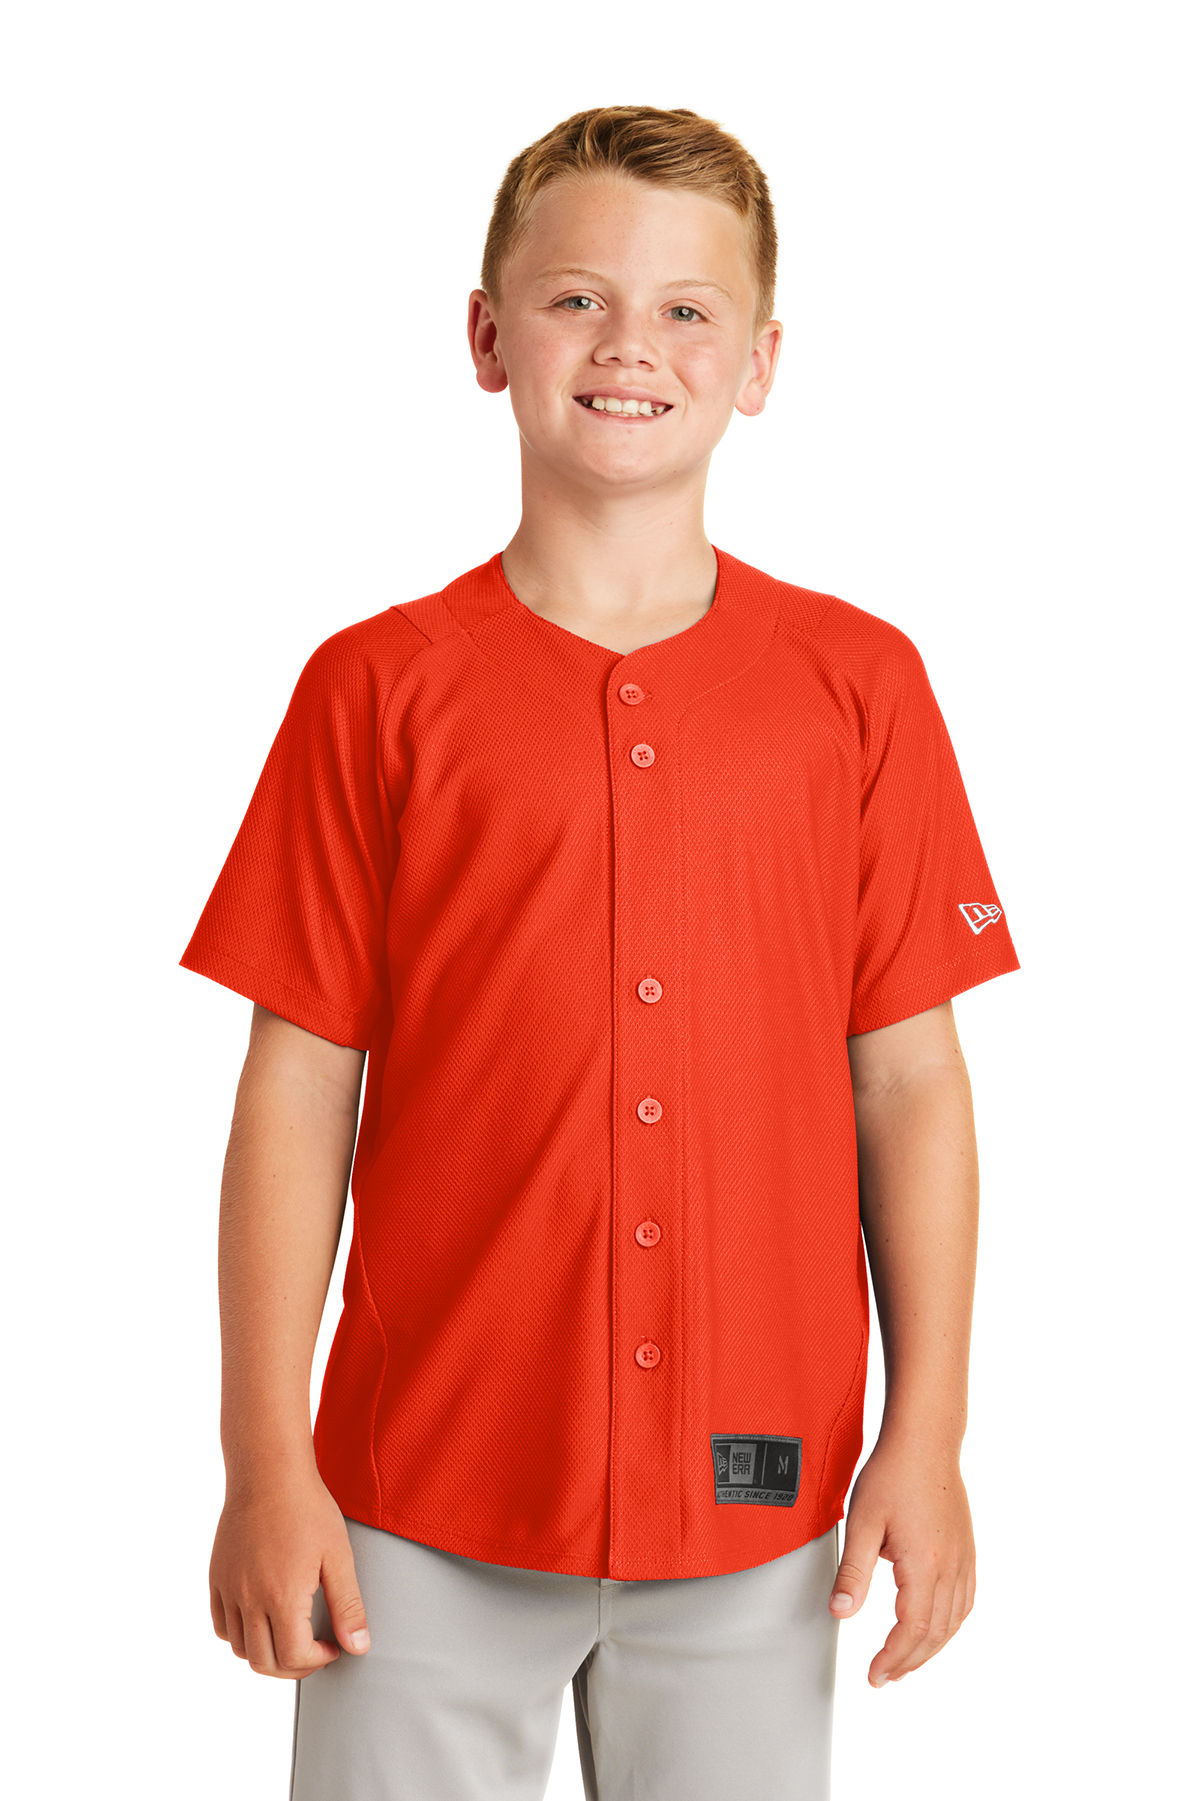 New Era YNEA220 - Youth Diamond Era Full Button Jersey